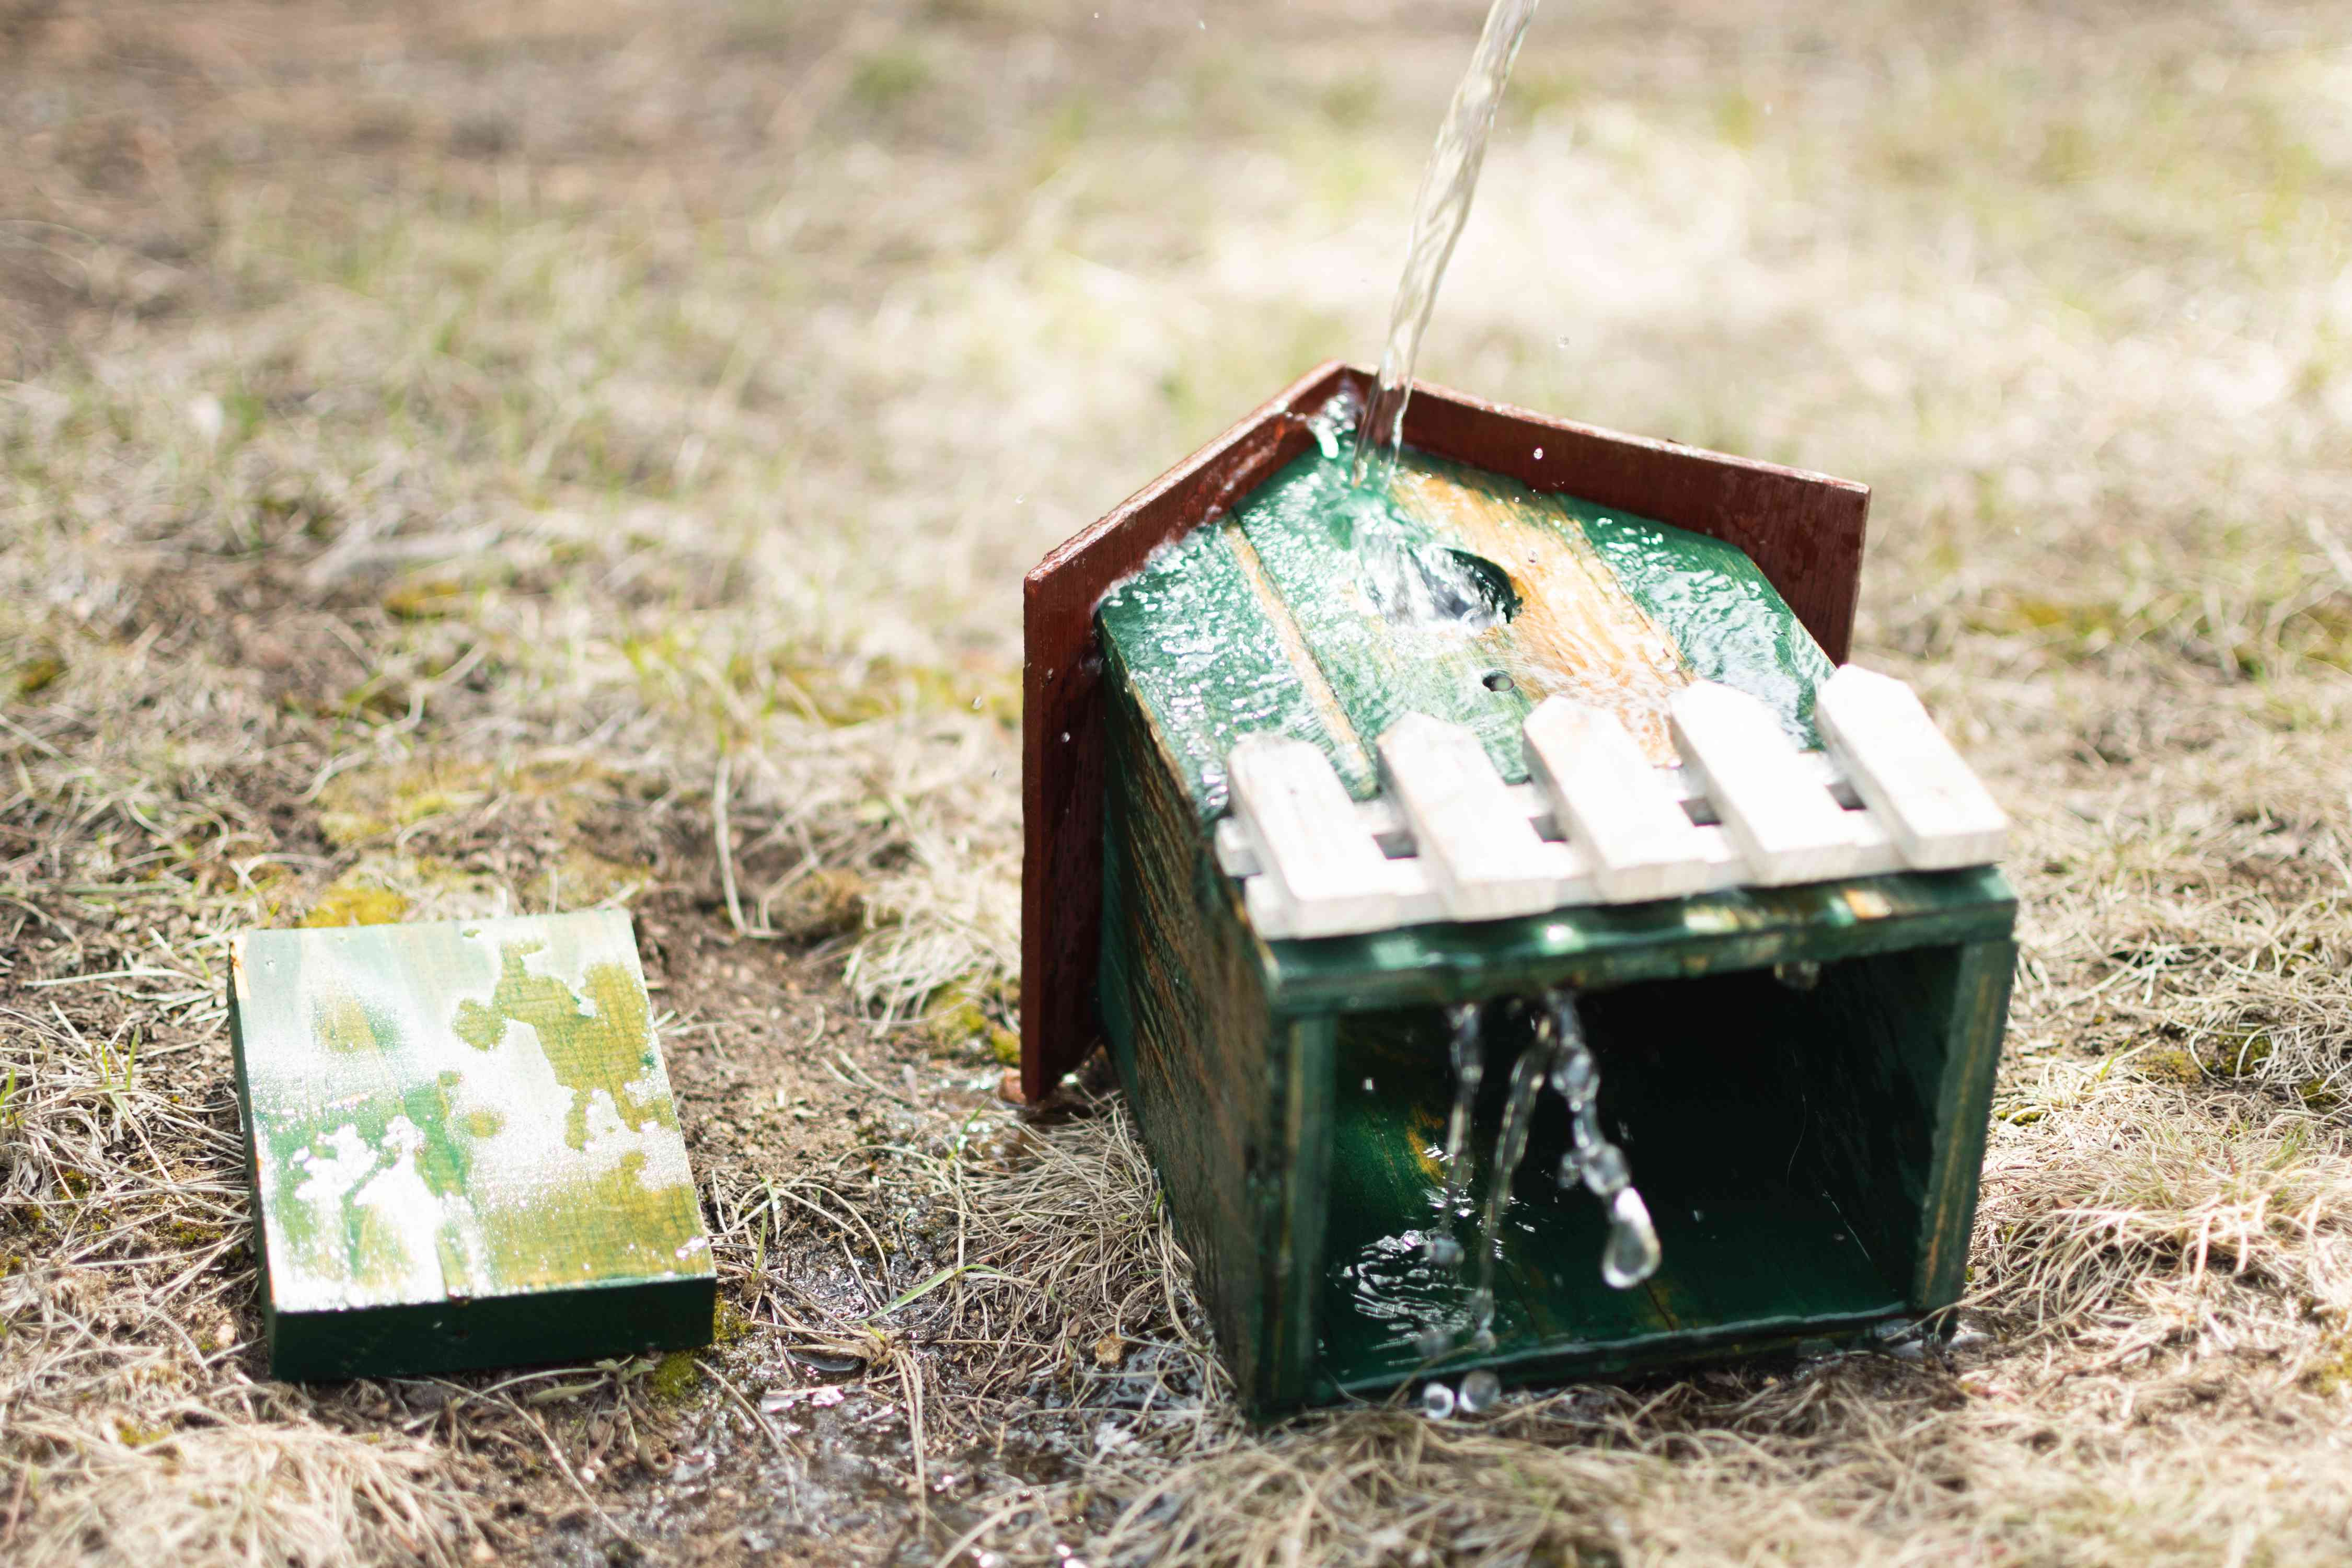 Wooden green birdhouse rinsed with clean water to remove bleach solution